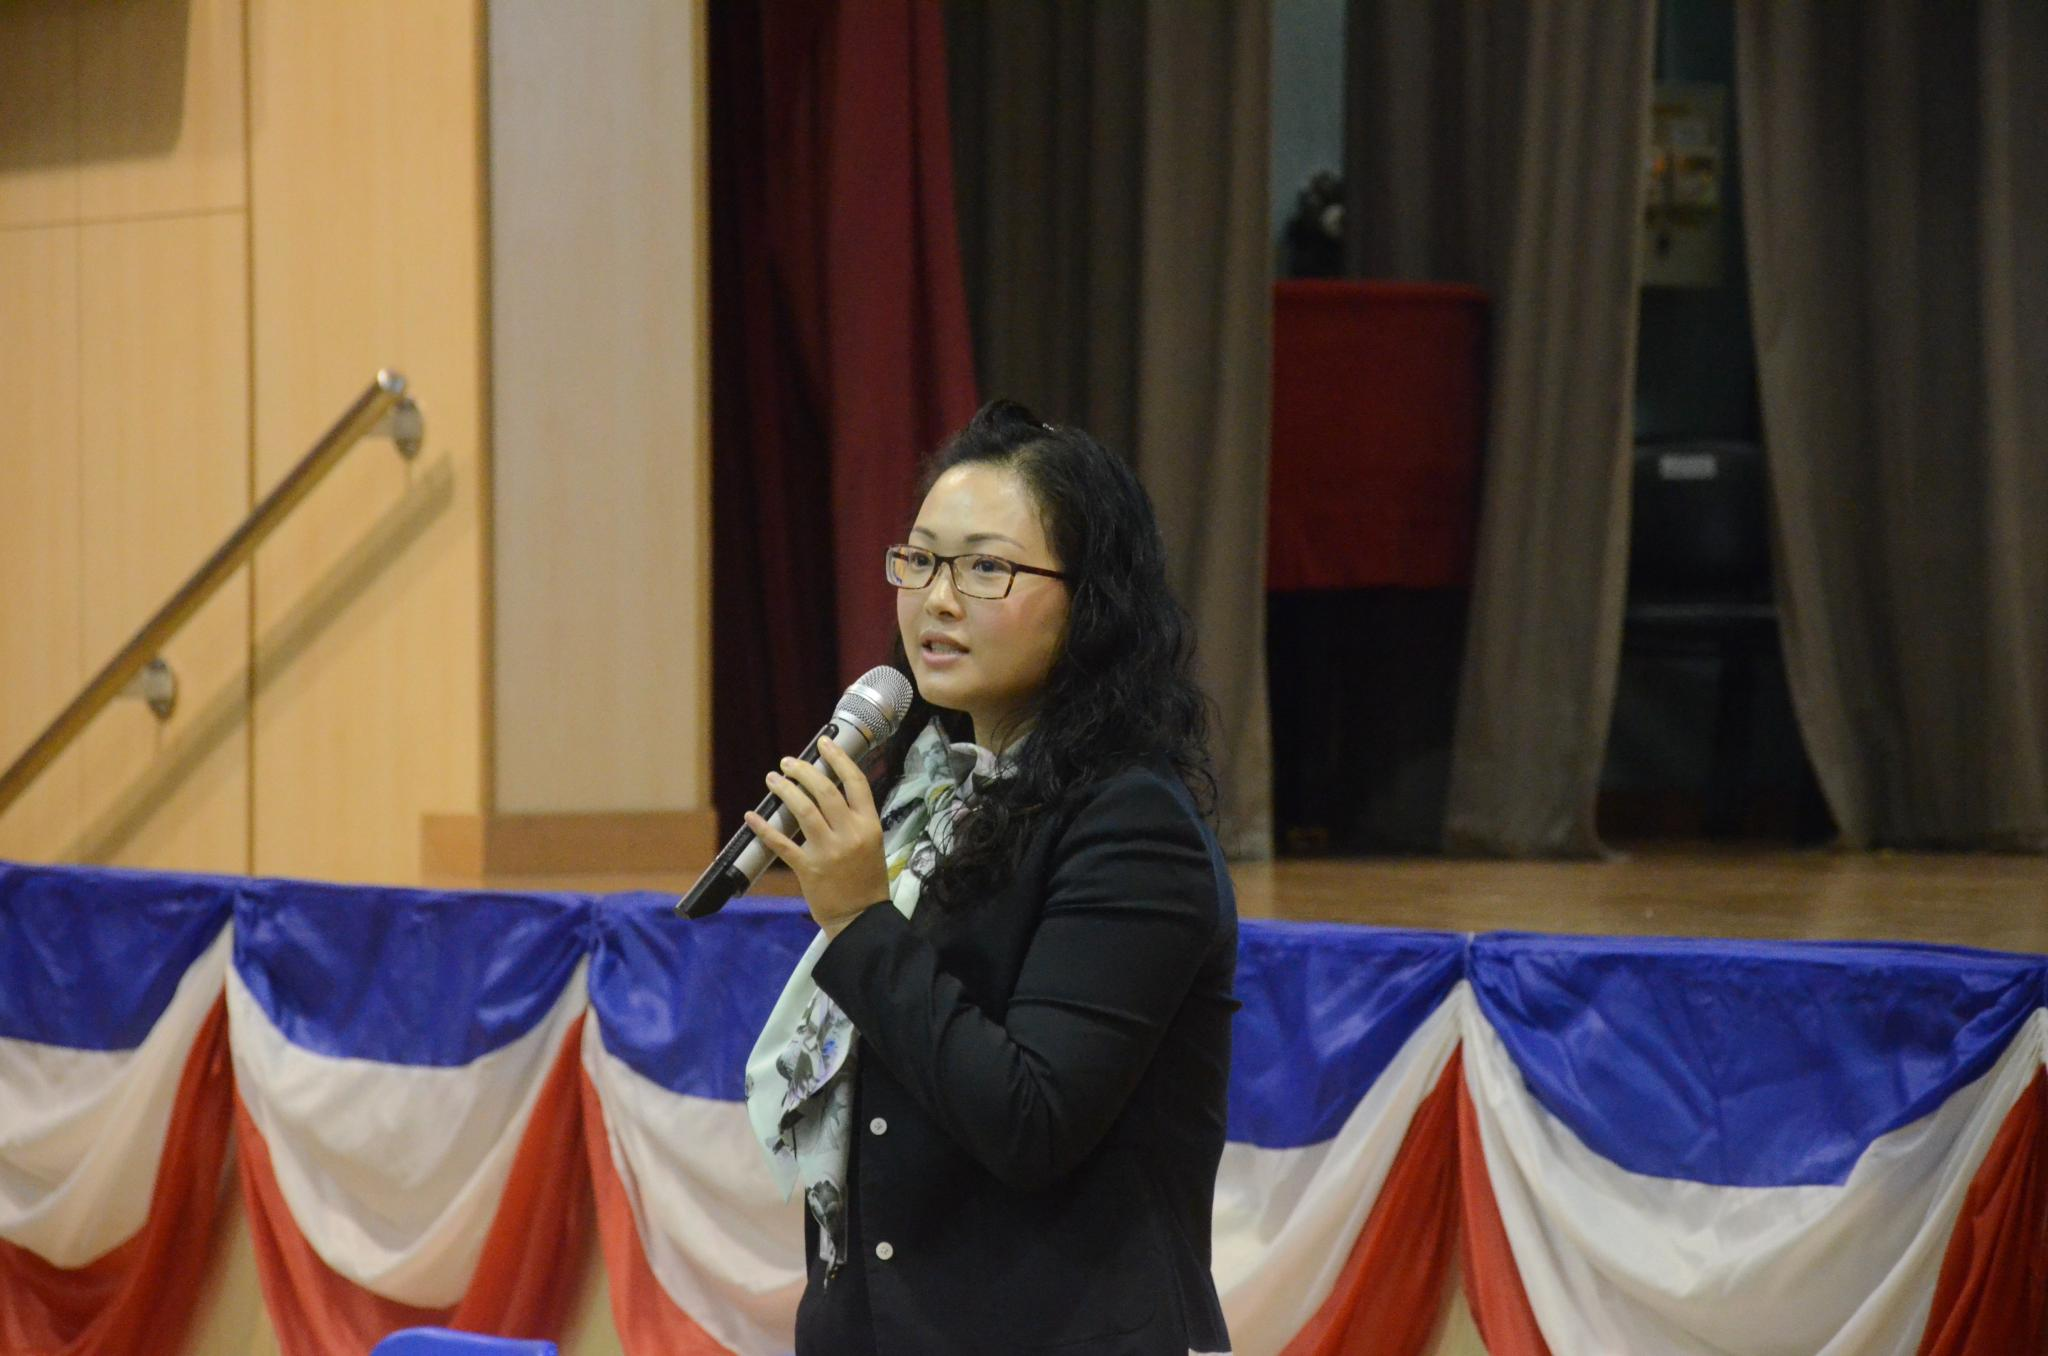 Assistant Principal Ms. Leung Pui Fan is holding the admission talk in the hall.